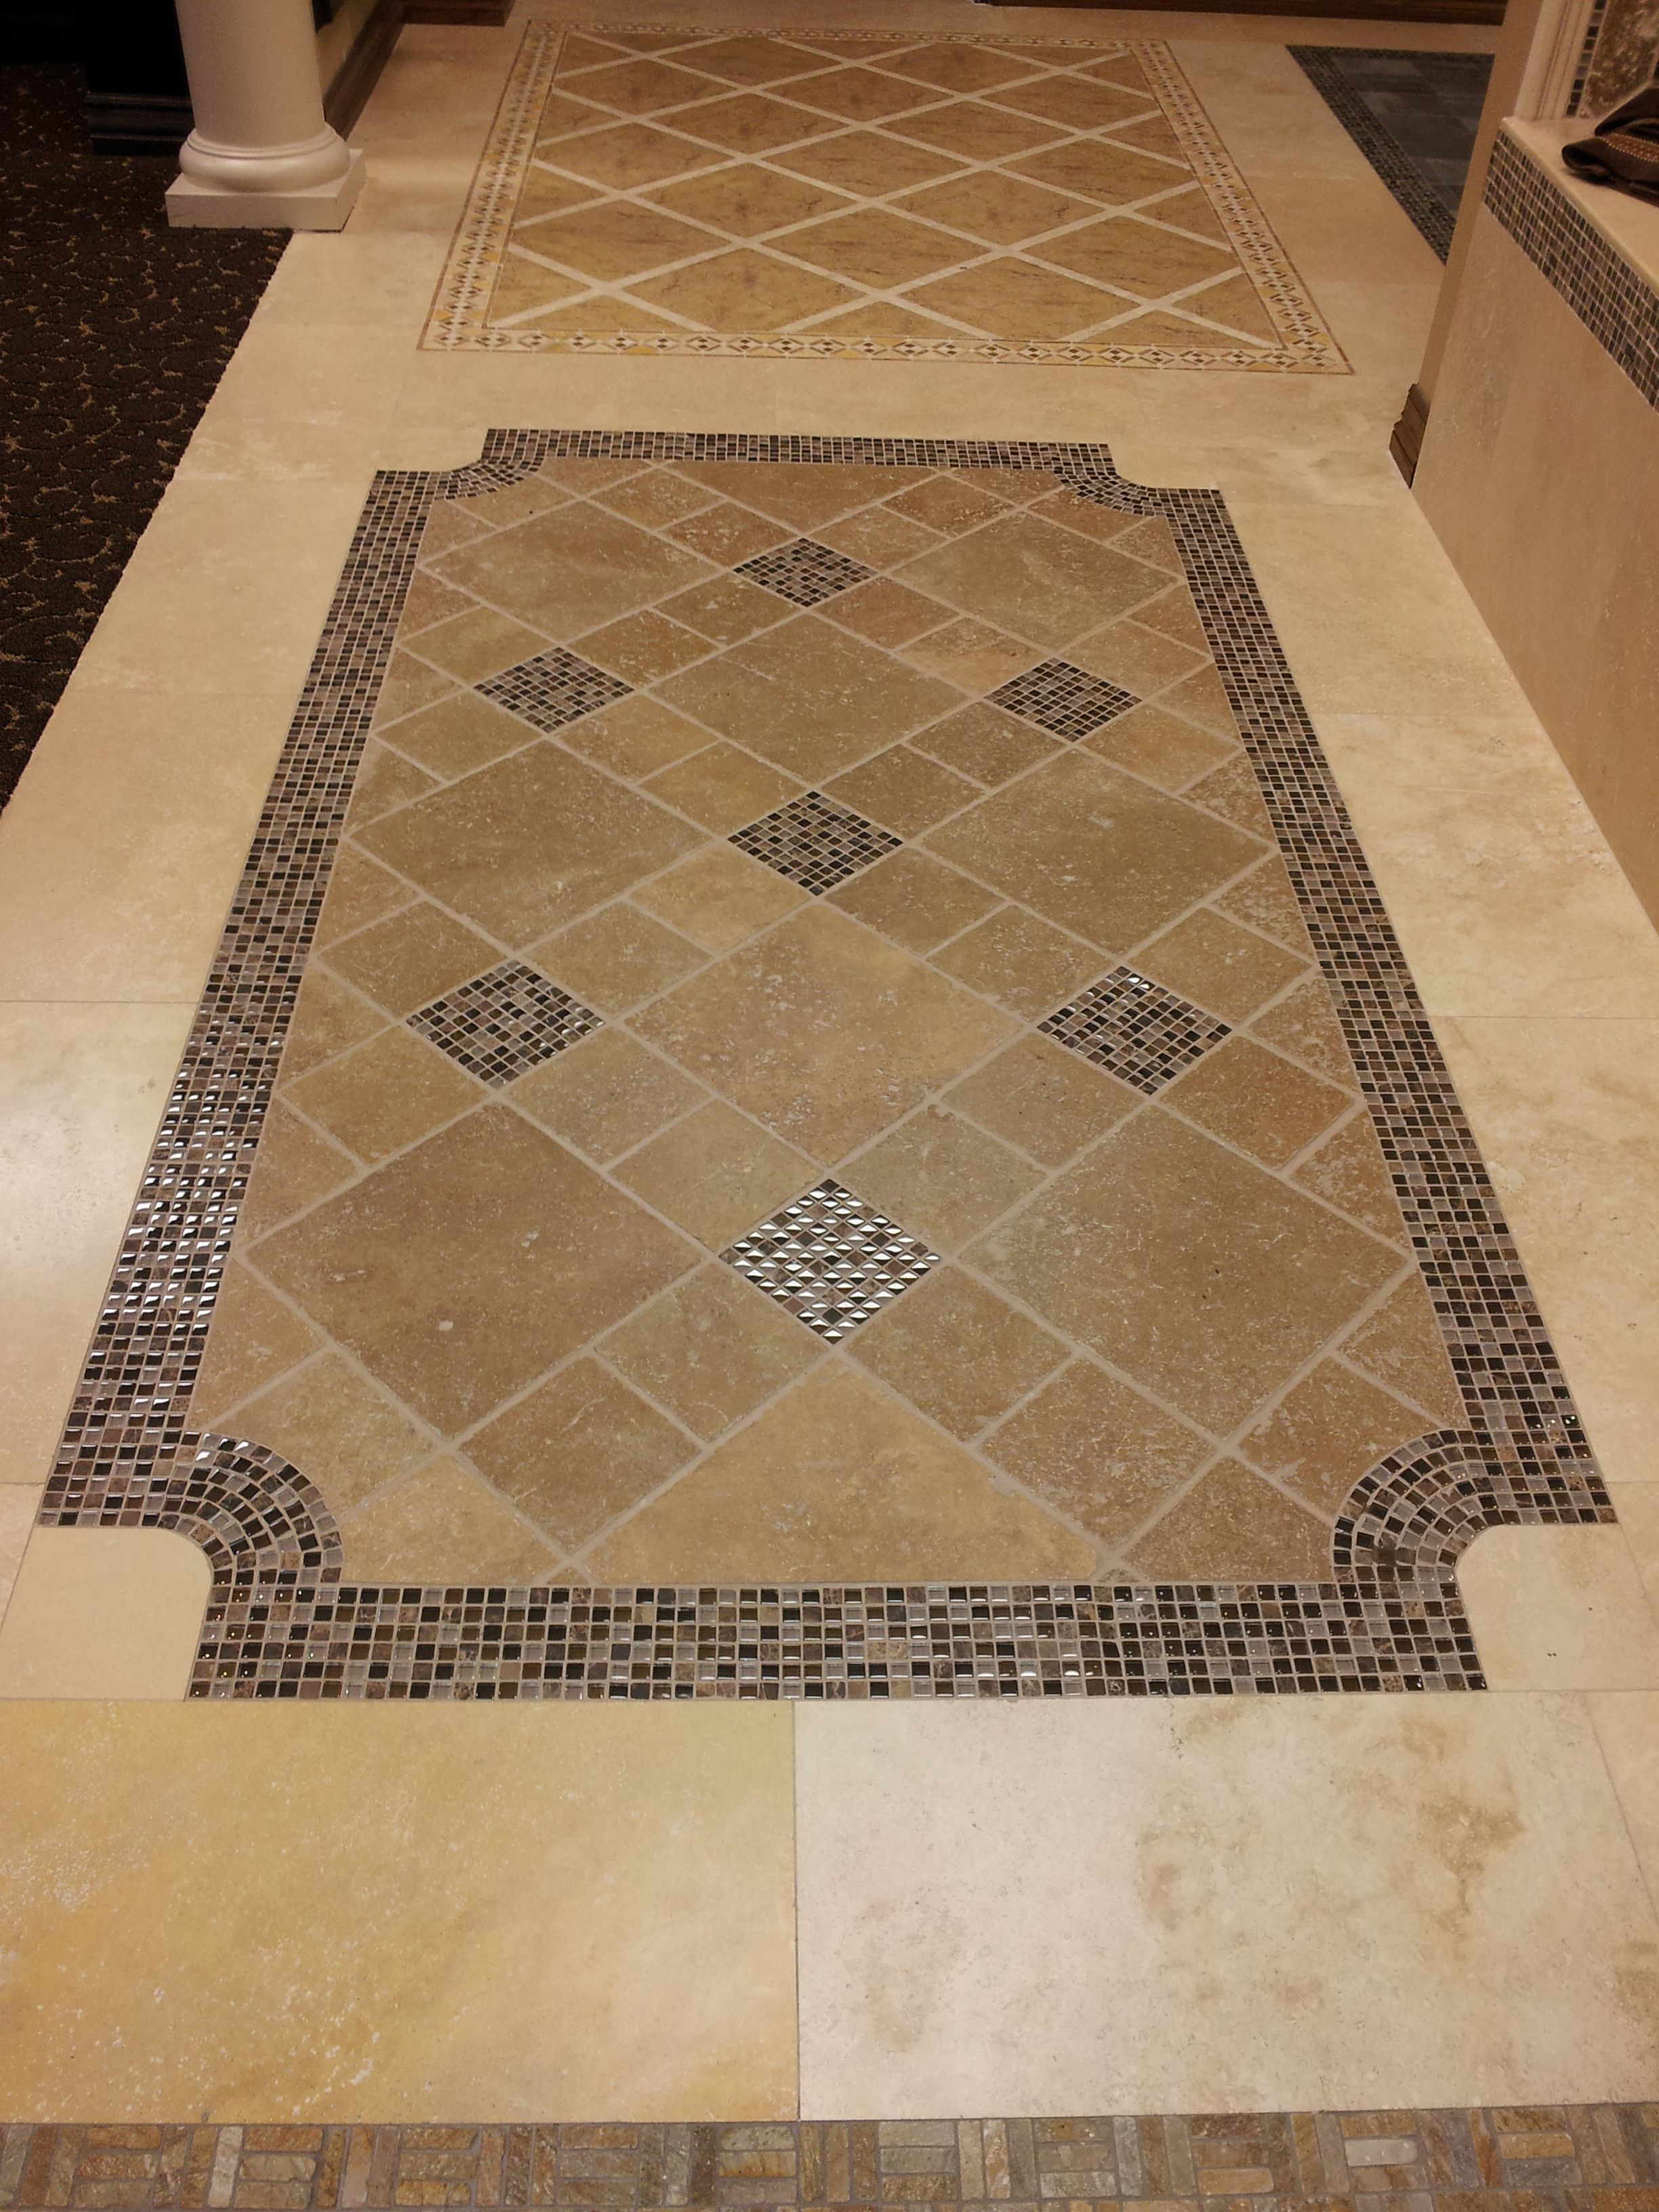 penny tile designs that look likemillion bucks and entry entryway tiles floor 5